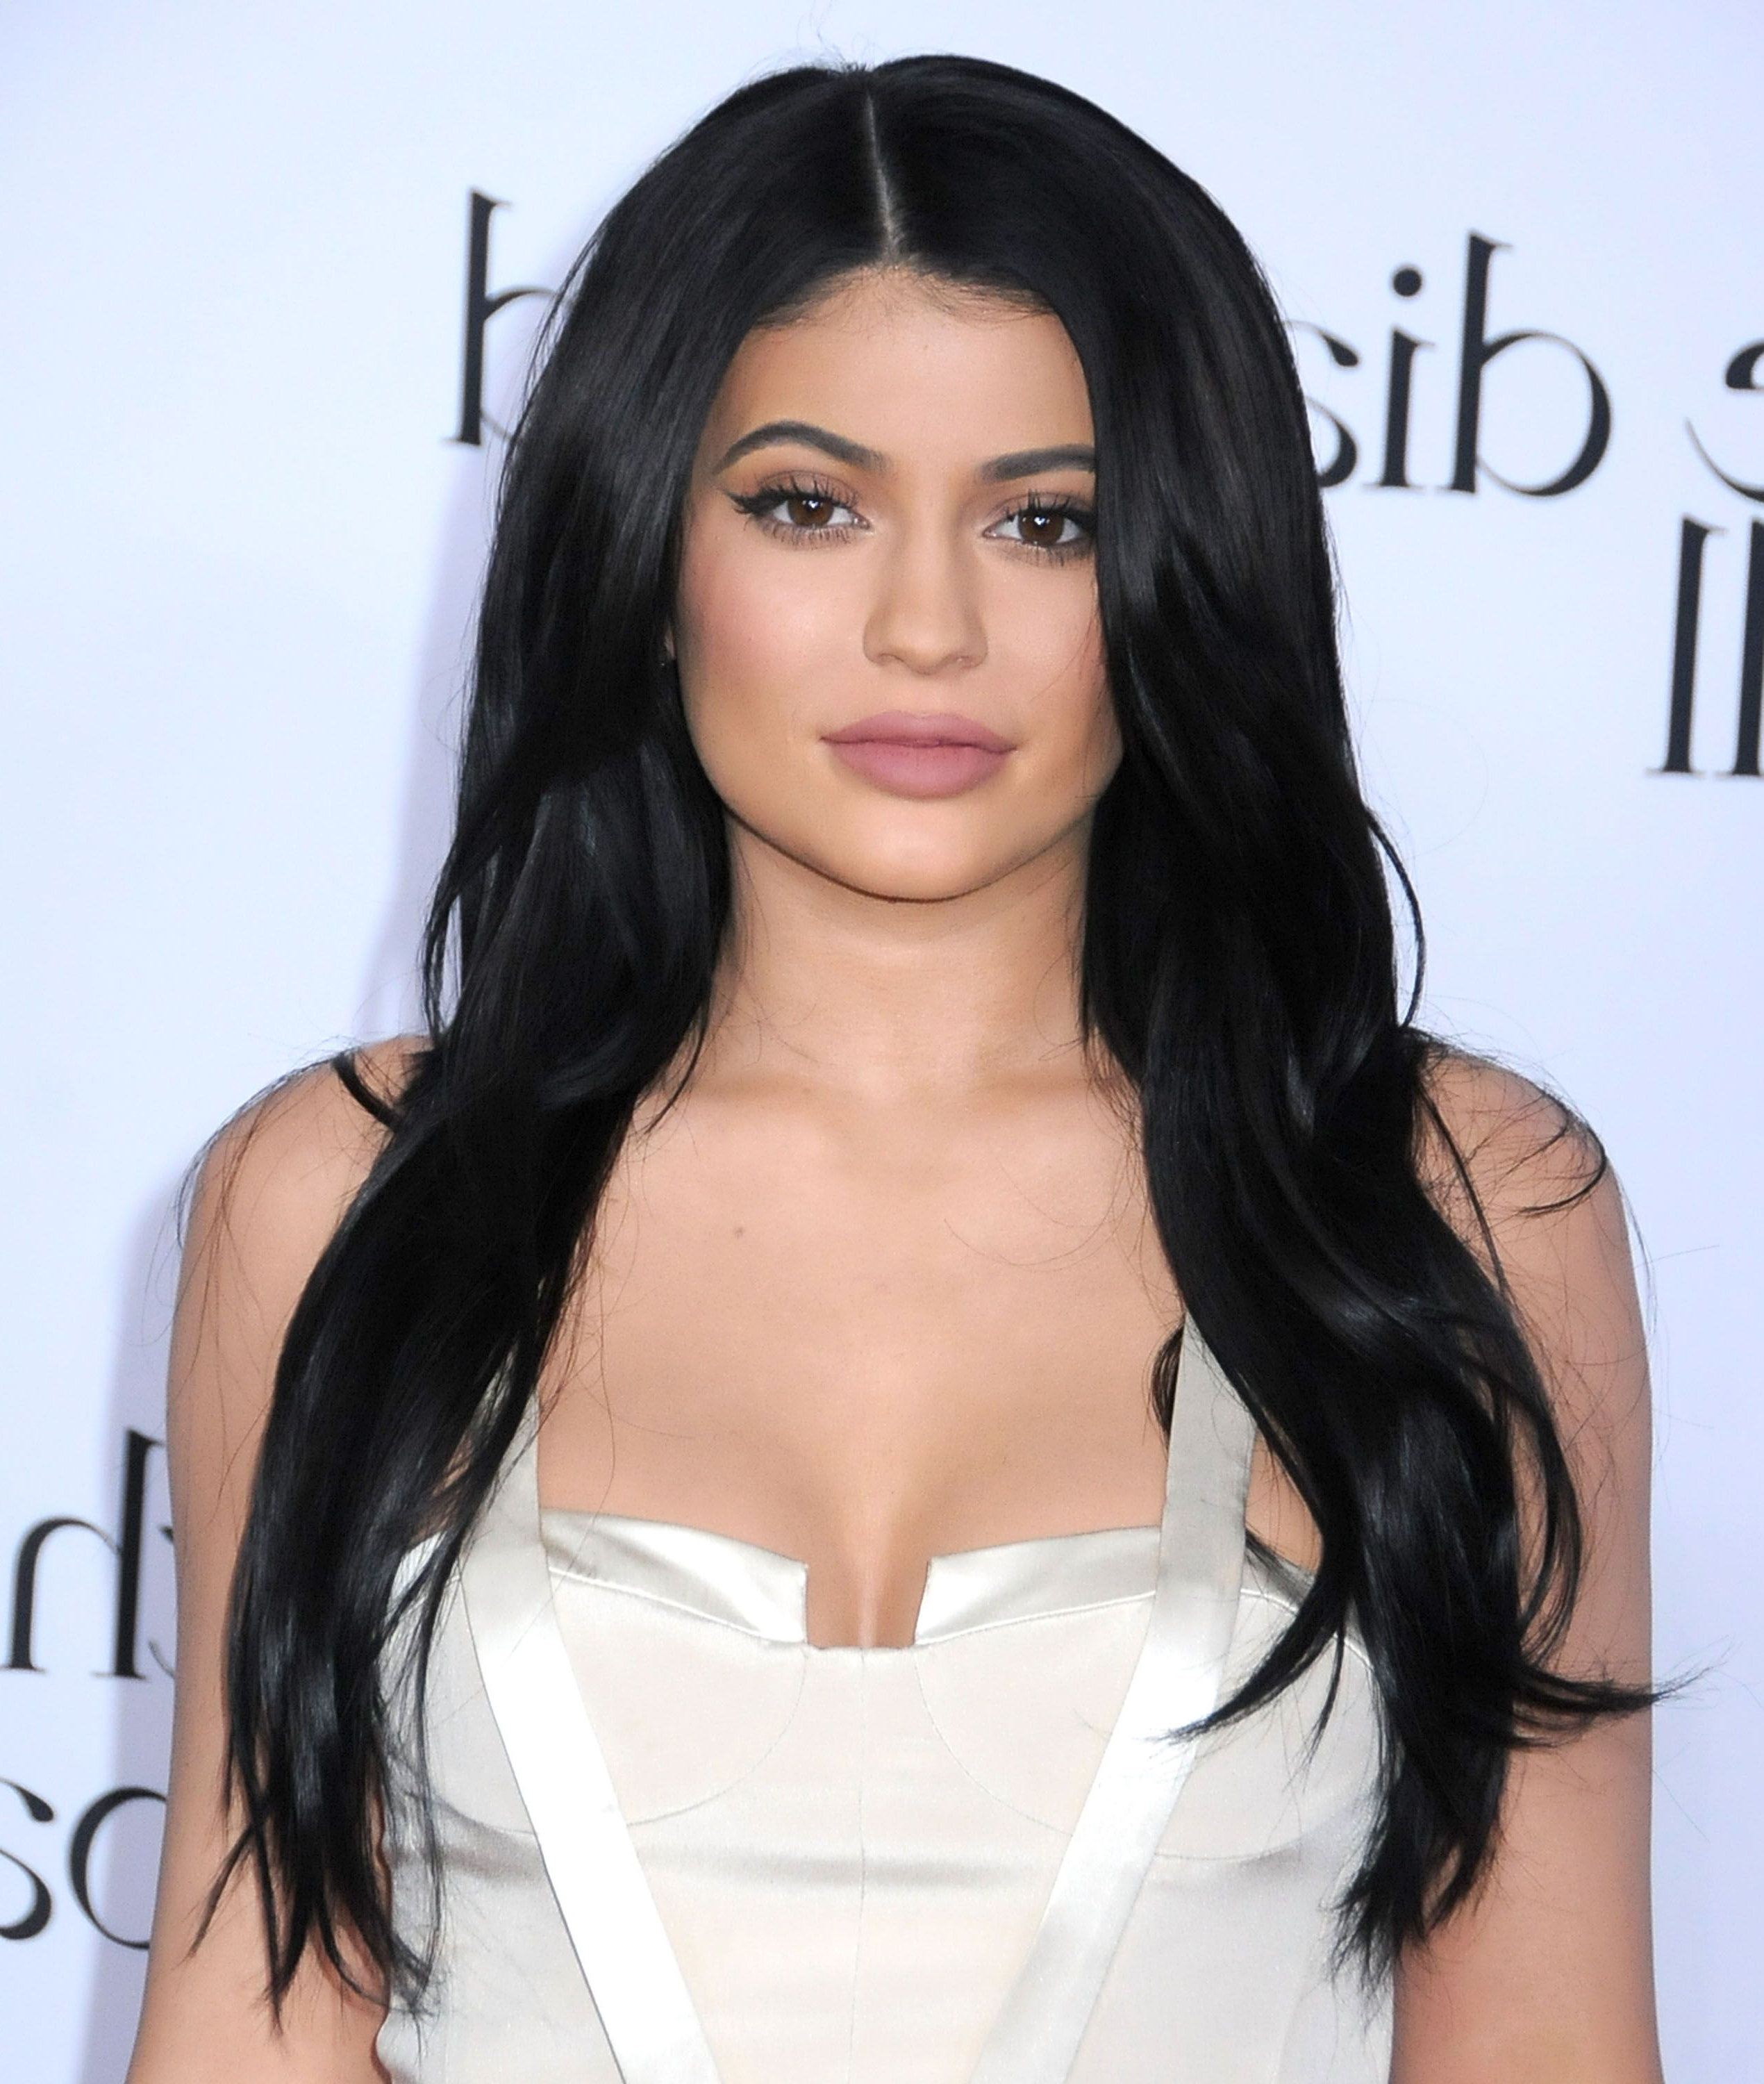 50 Best Kylie Jenner Hair Looks – The Best Hairstyles Of Kylie Jenner Intended For Widely Used Kylie Jenner Medium Haircuts (View 4 of 20)